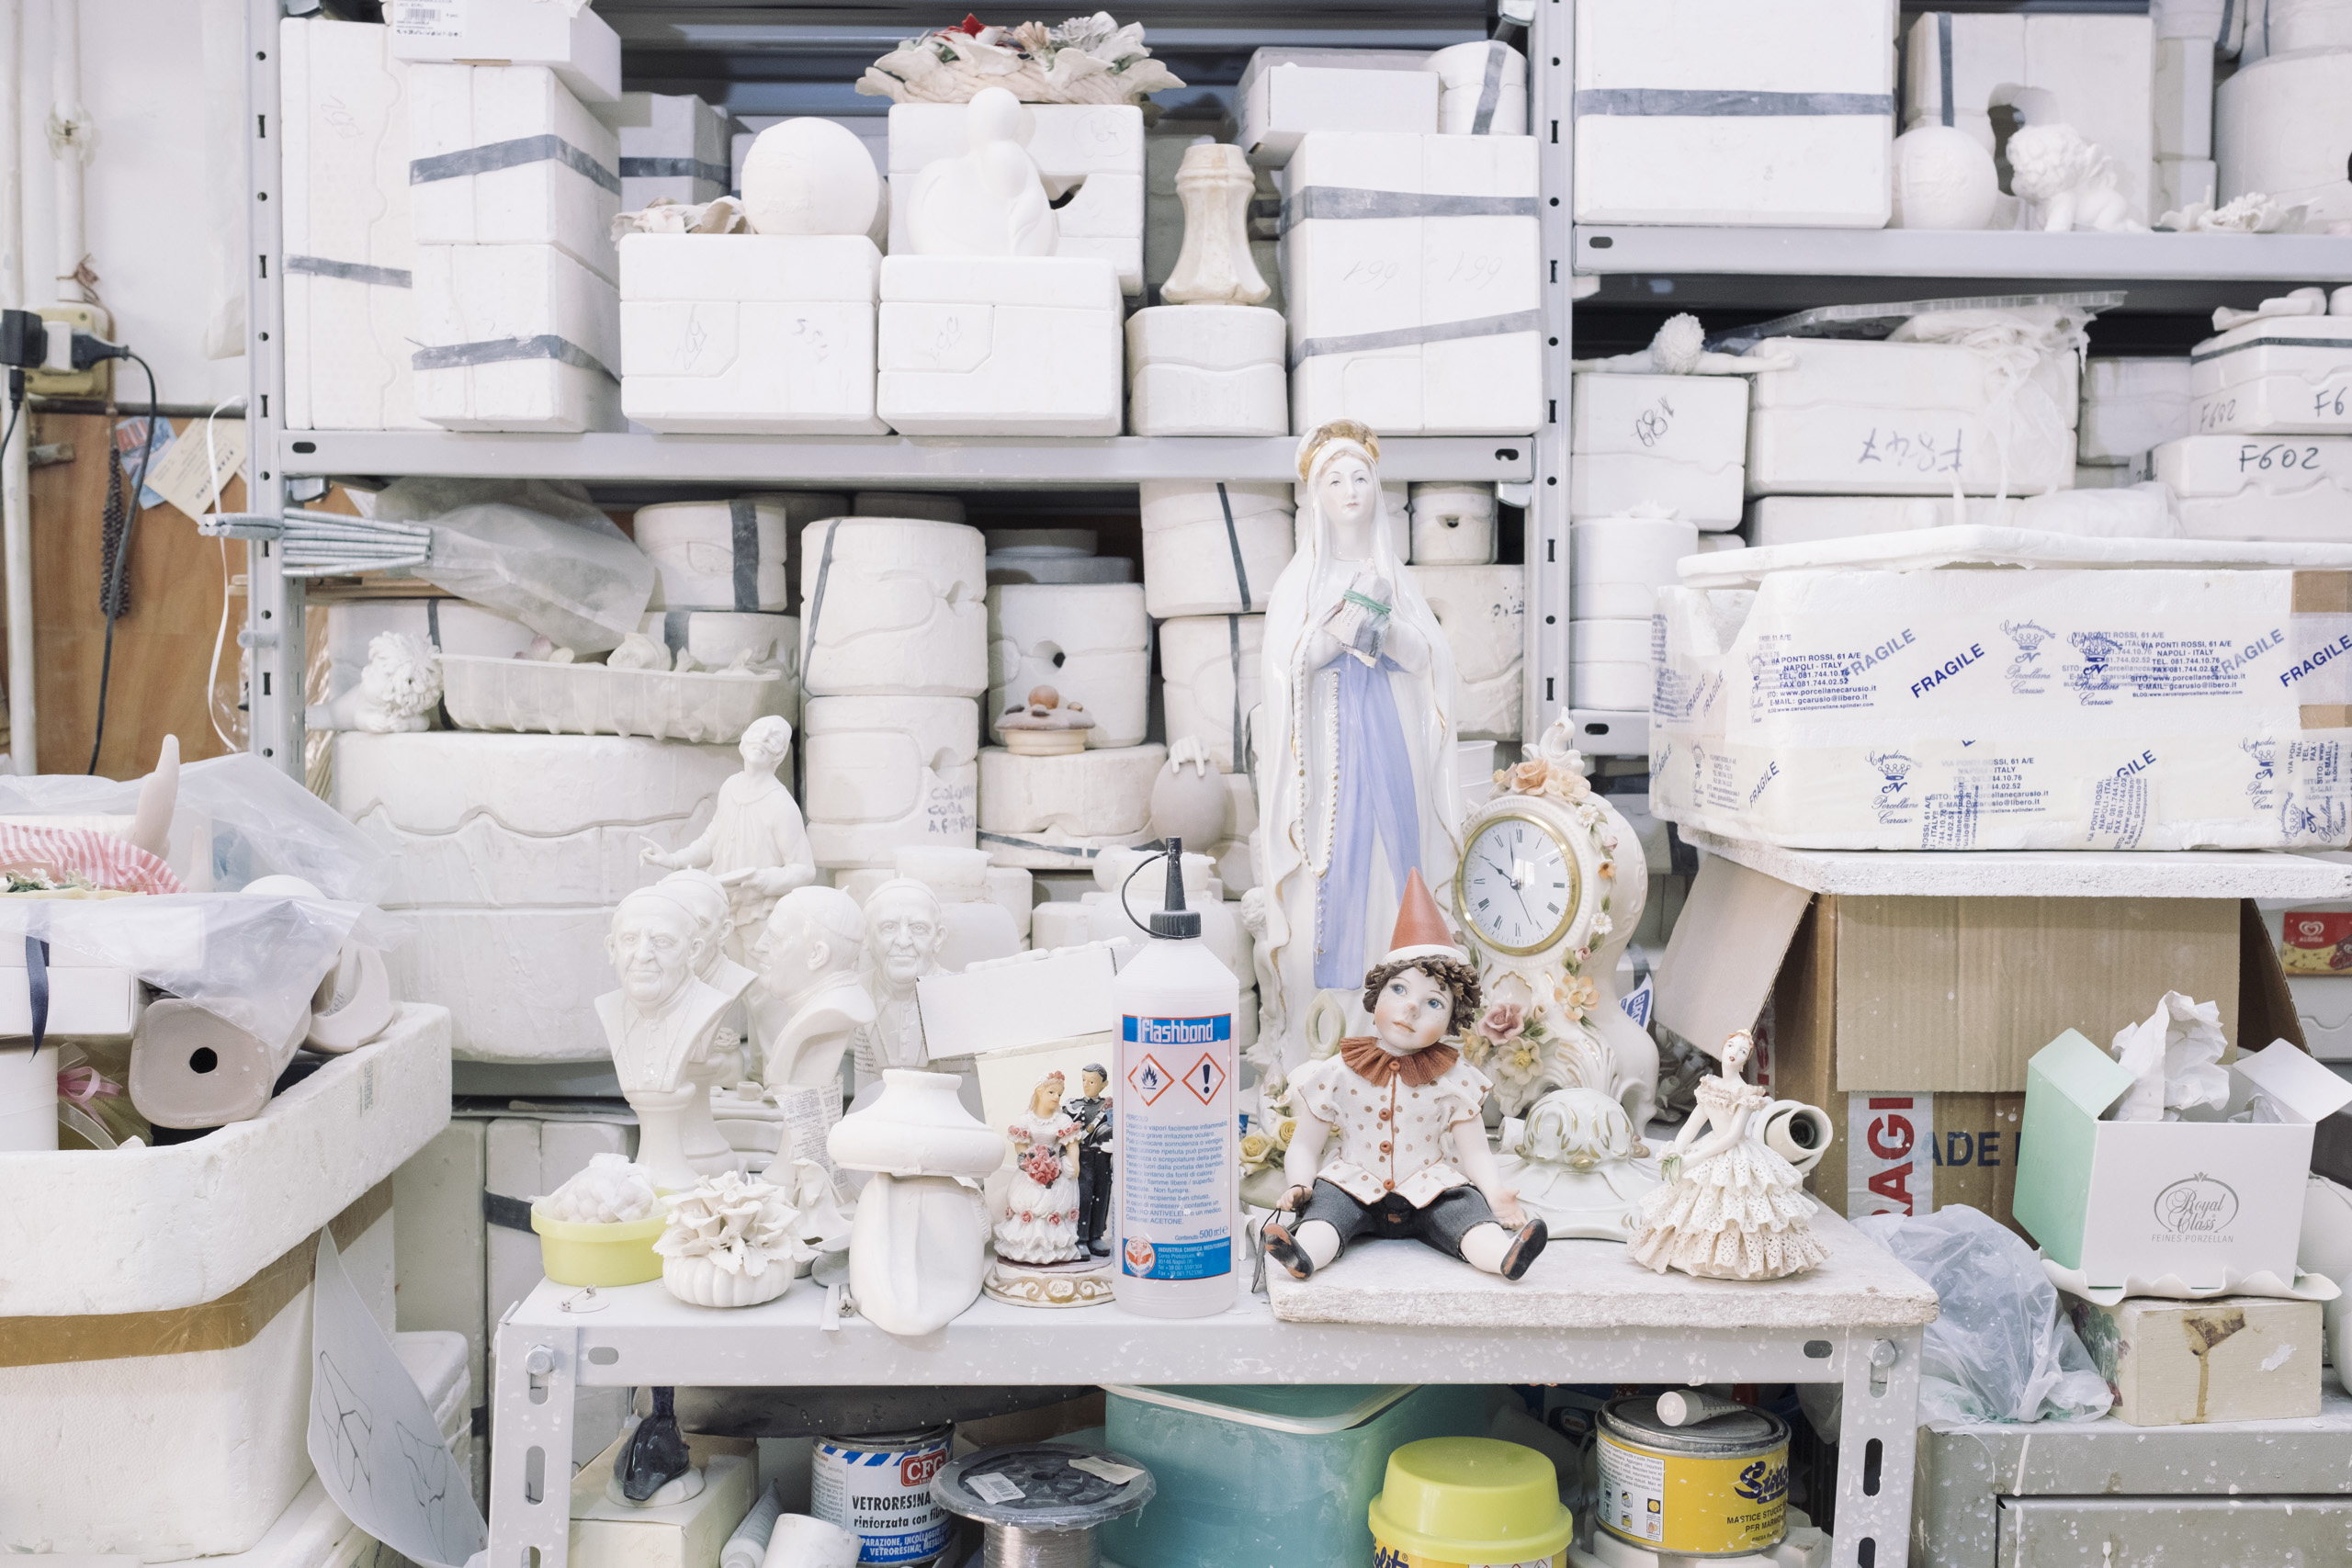 The interior of a Capodimonte porcelain laboratory in Naples, April, 2016. The Royal Porcelain Factory was established in the Royal Palace of Capodimonte by King Charles of Bourbon and his wife in 1743.